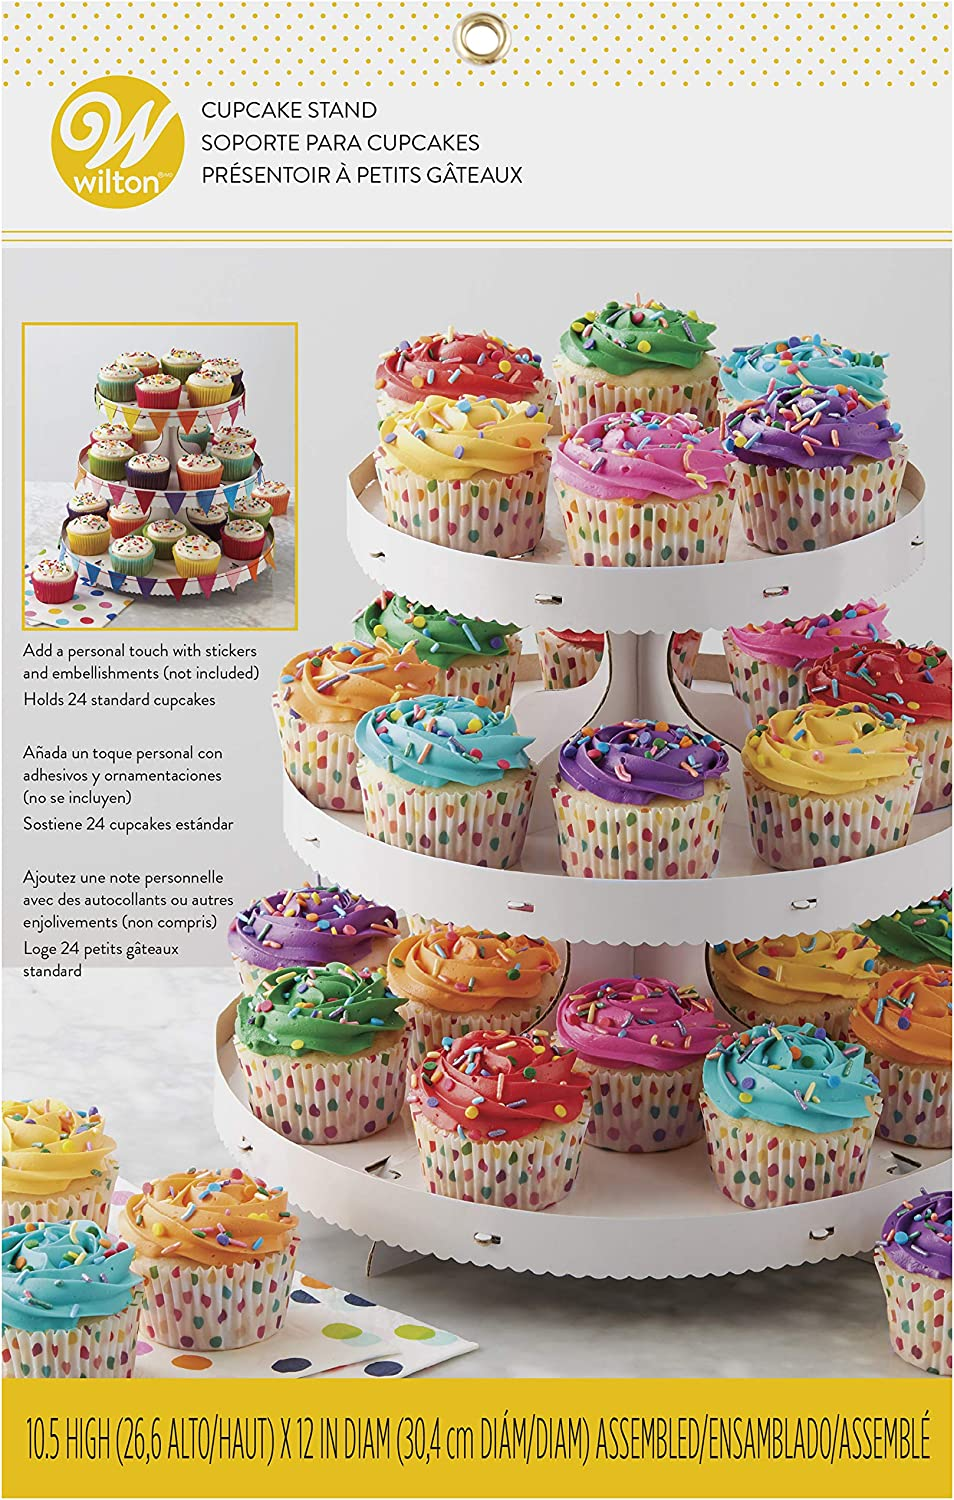 Wilton 1512-0726 Treat Stand Color Wheel Cupcake Stand